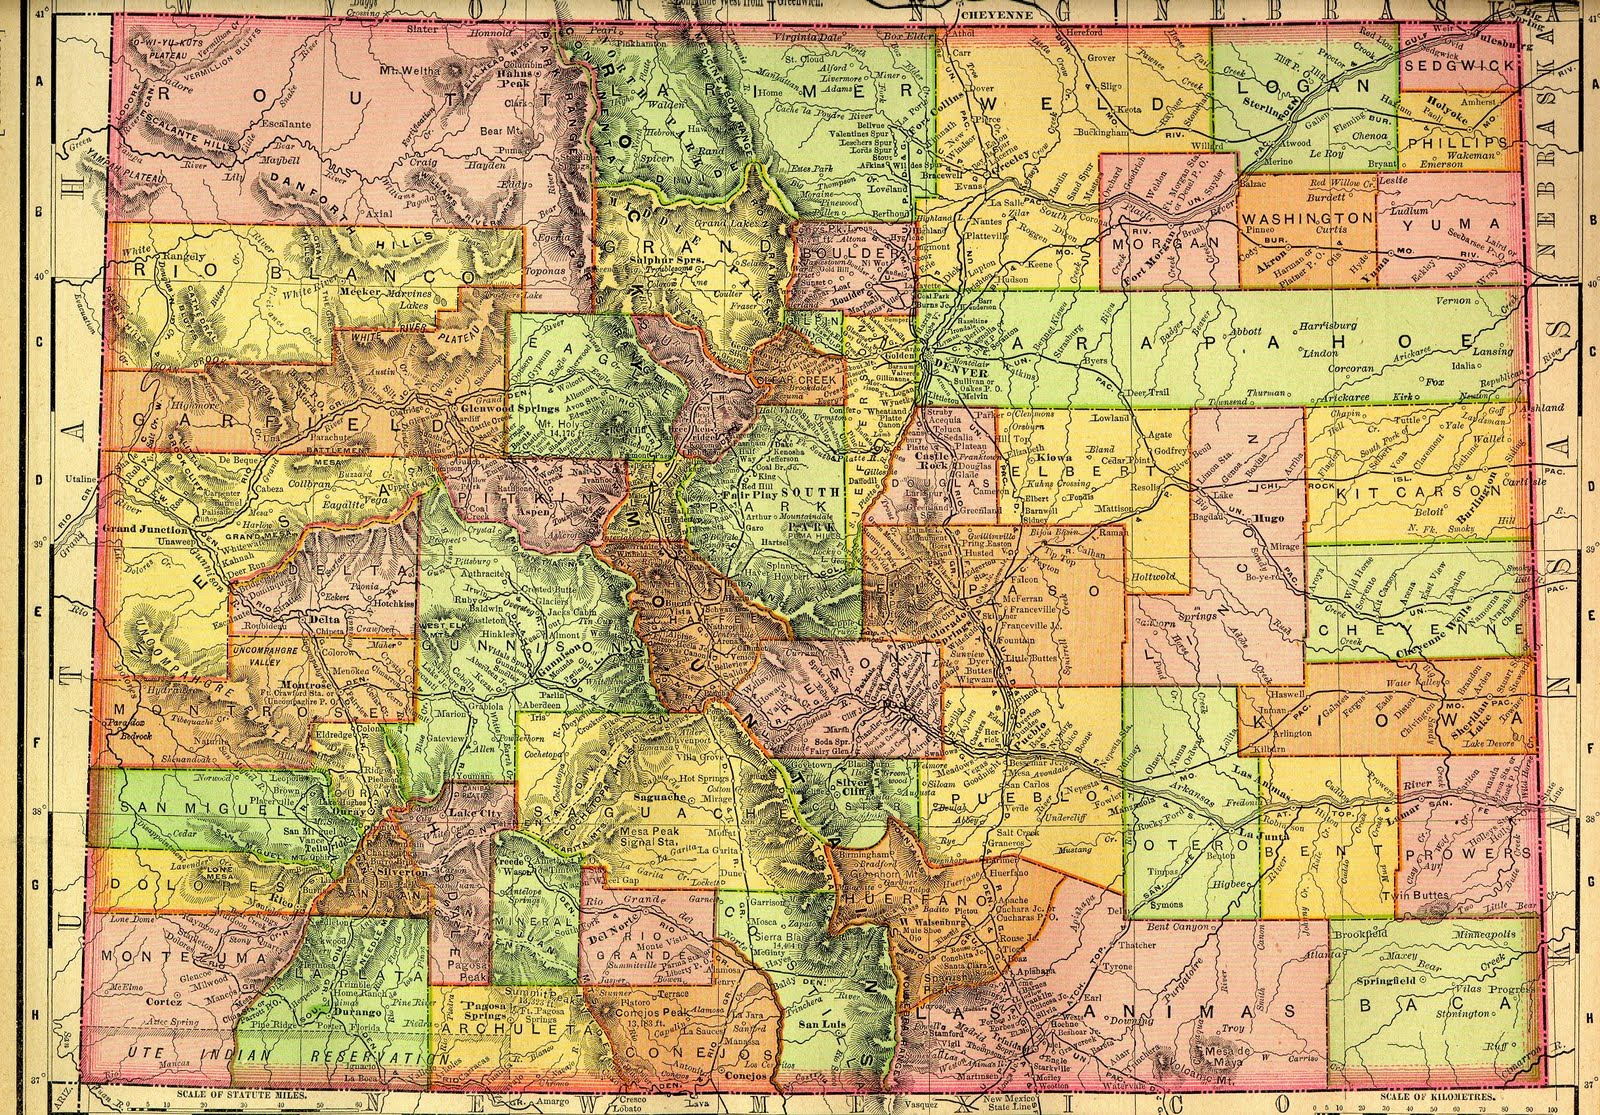 Colorado State Publications Library Historical Maps - Maps of colorado cities